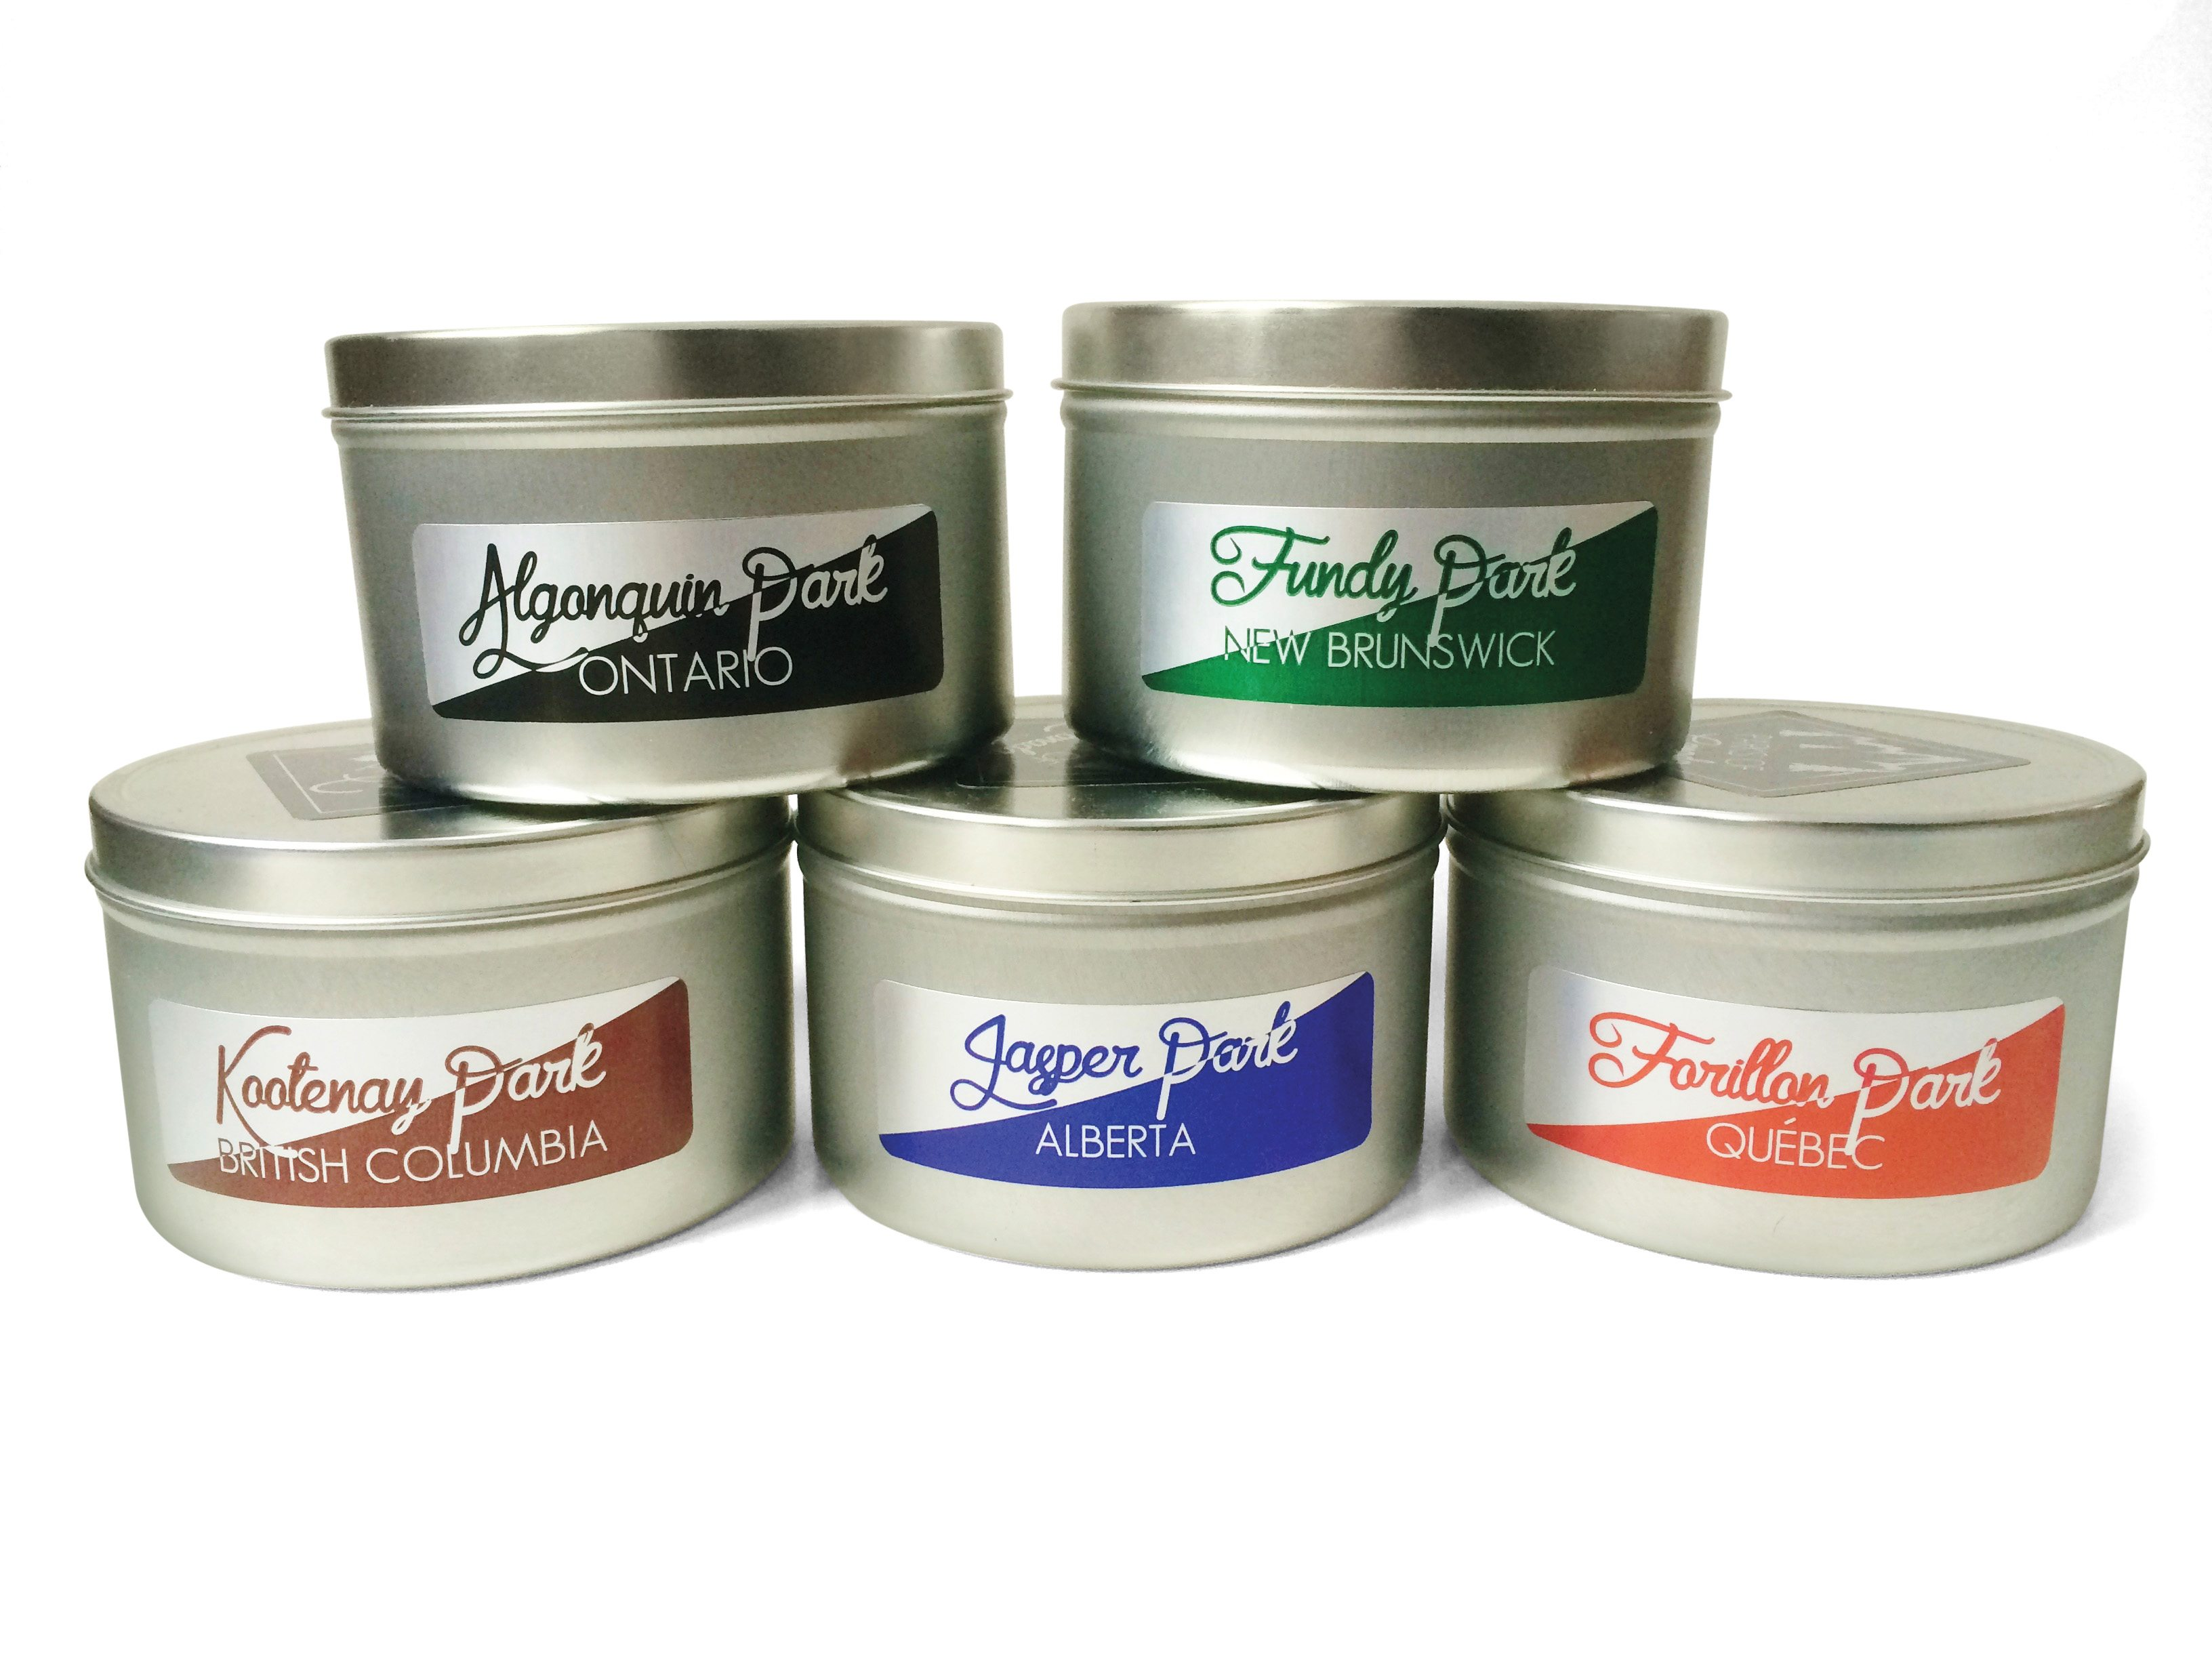 Parks of Canada candle $35 each by by Natalie Gluic, Smells Like CanadaGroup